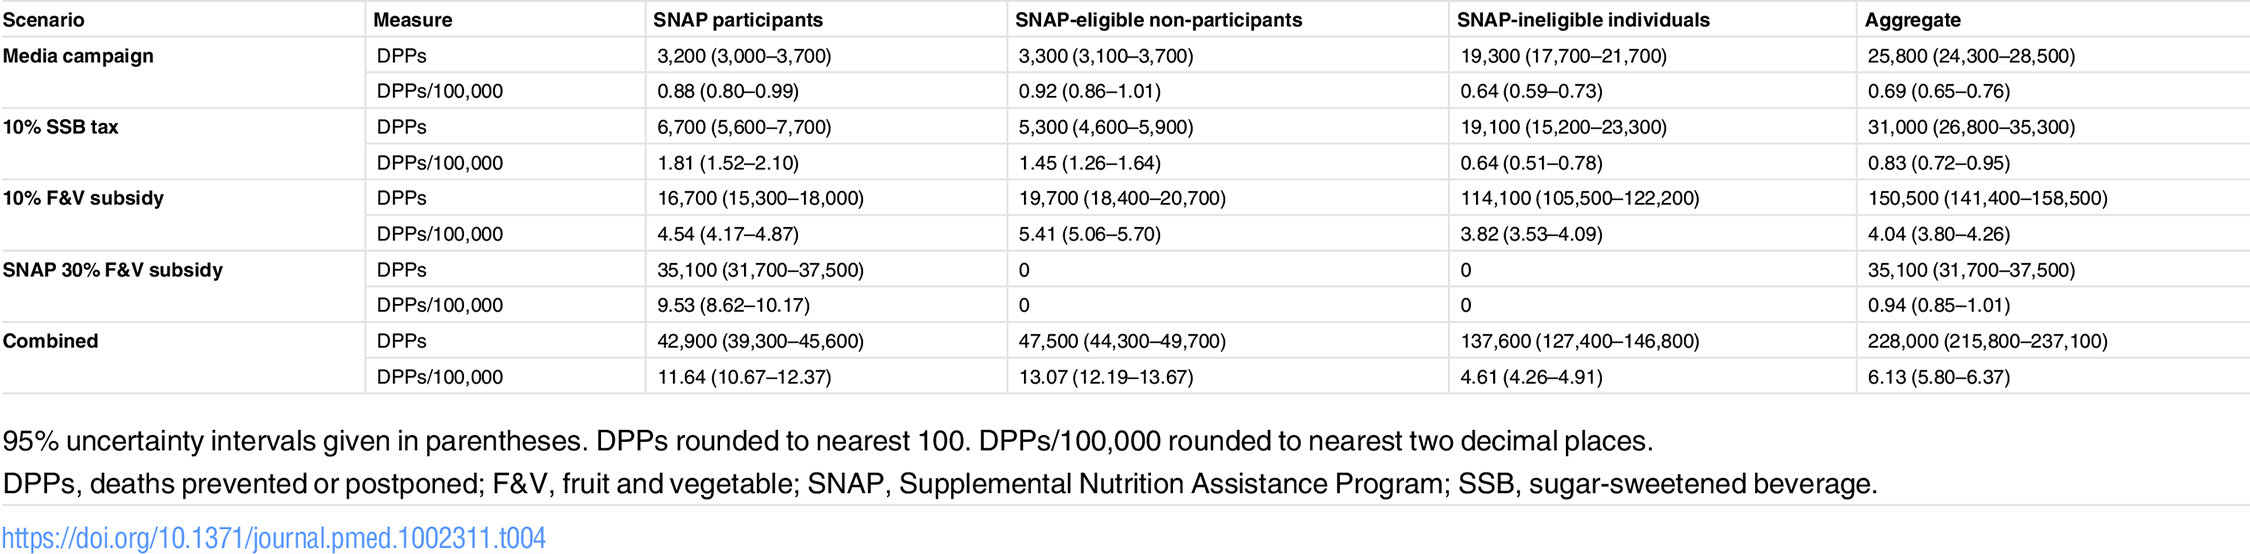 Total cumulative deaths prevented or postponed from 2015 to 2030 under each policy modelled, stratified by SNAP group.